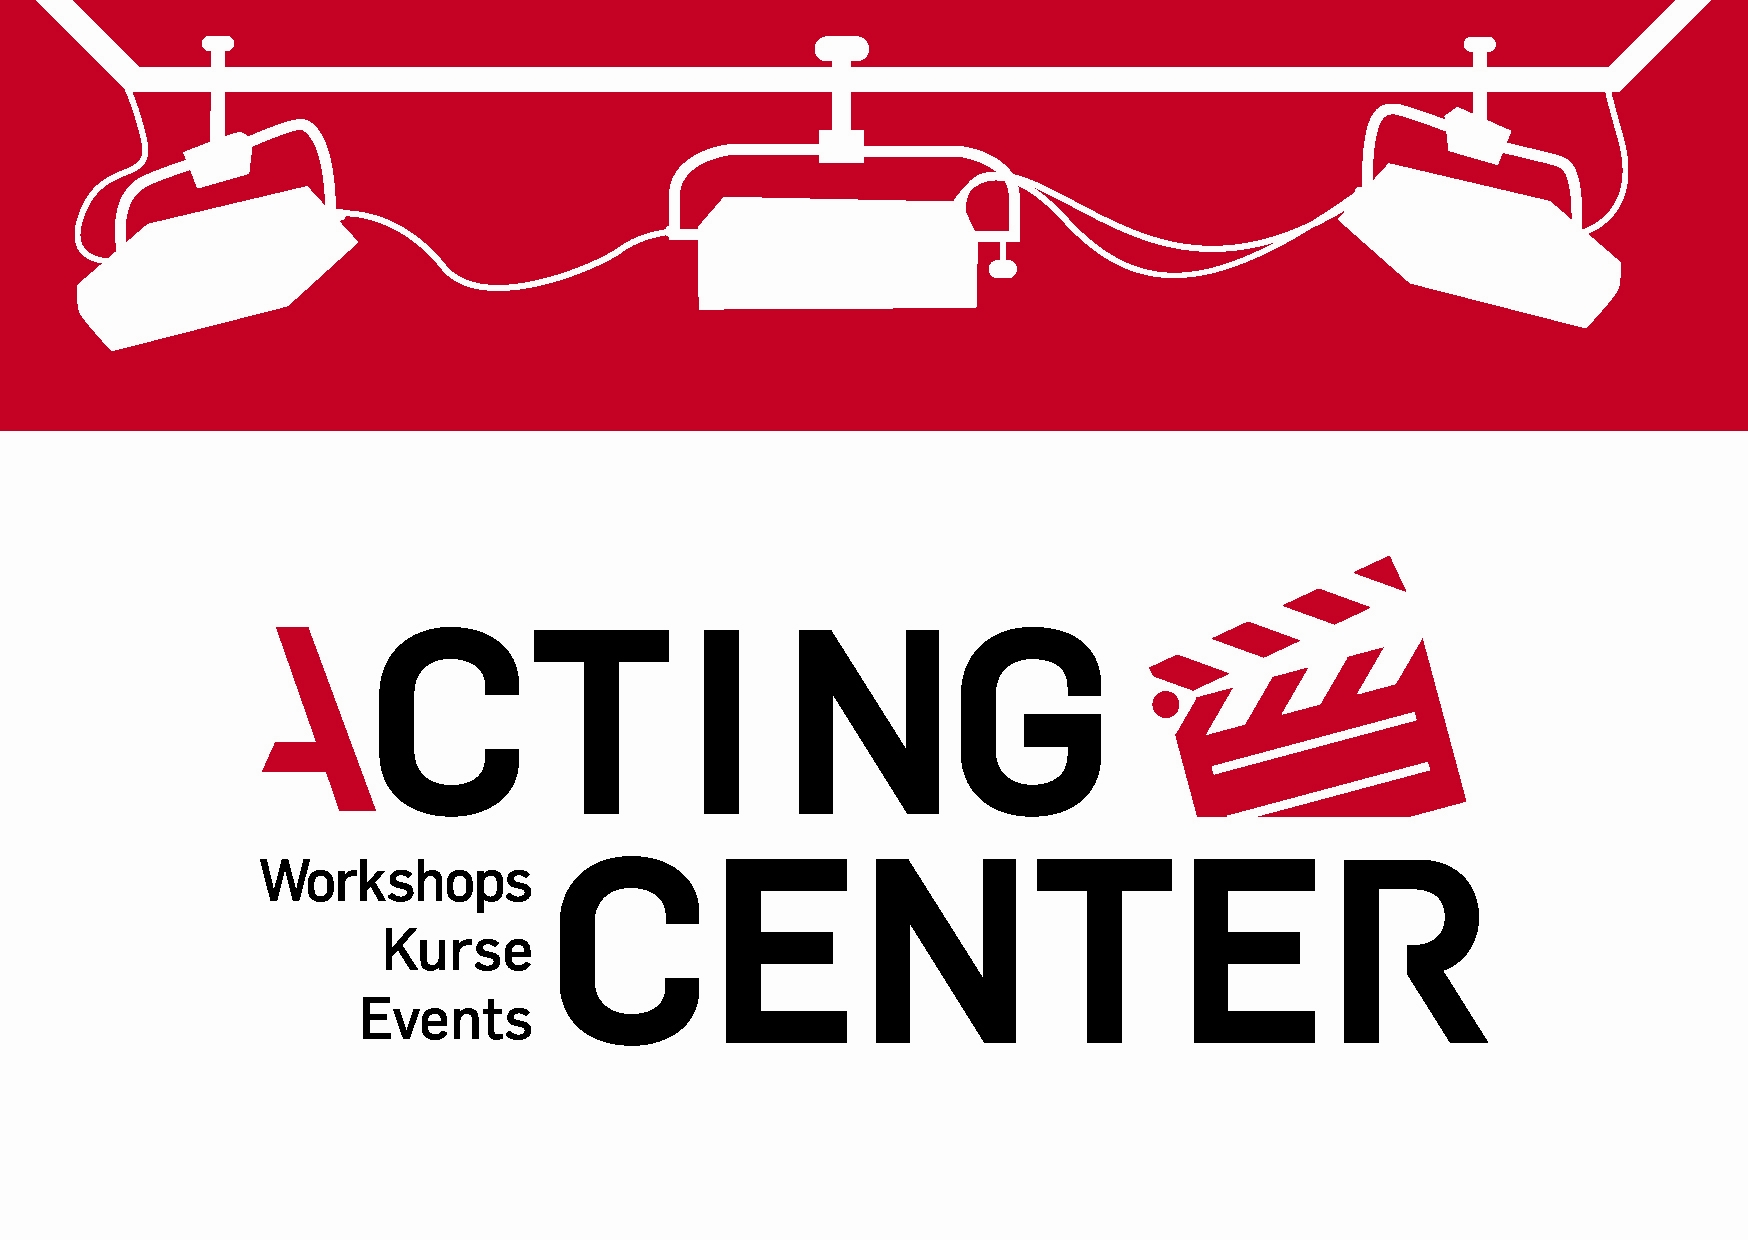 http://actingcenter.de/leistungen/workshops/